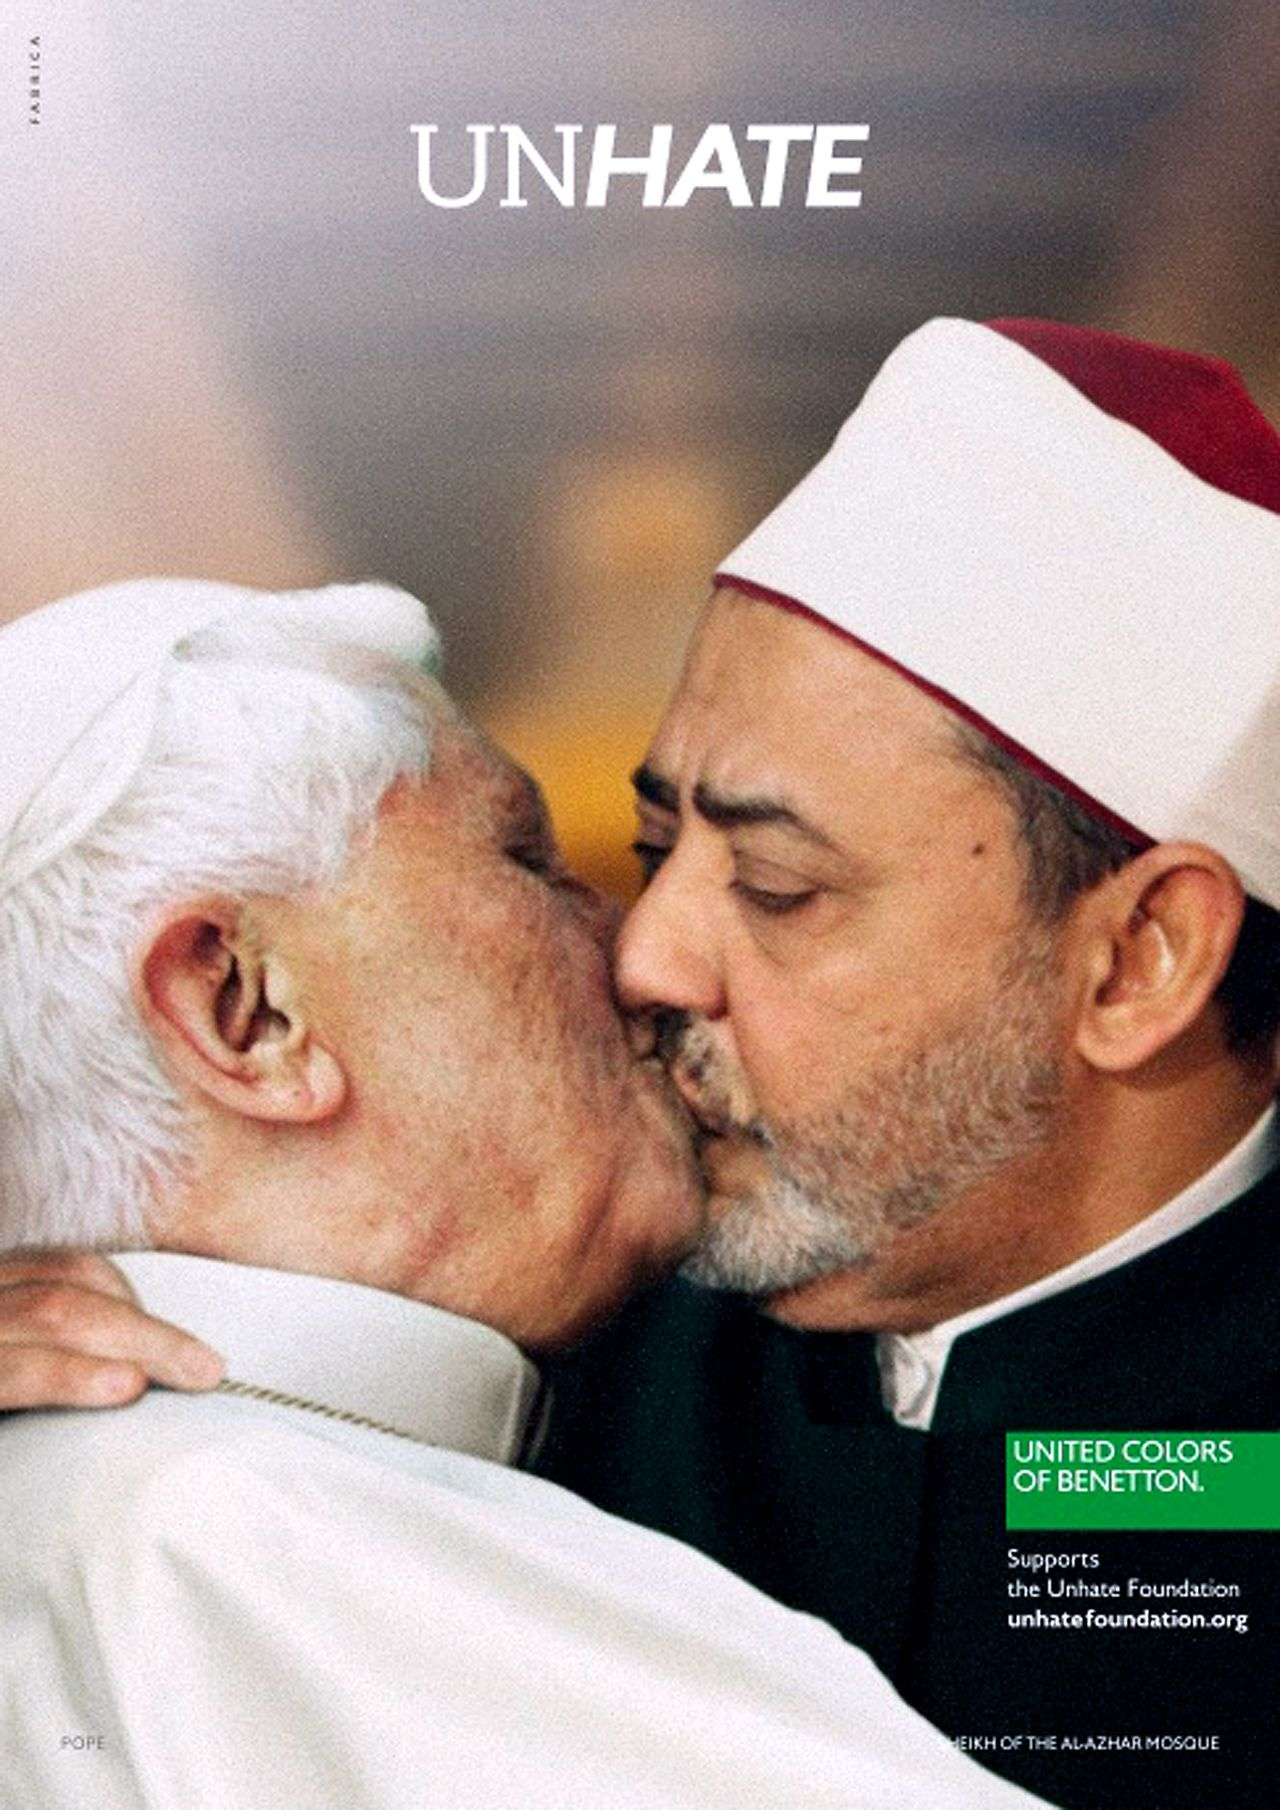 """RESTRICTED TO EDITORIAL USE - MANDATORY CREDIT """"AFP PHOTO / FABRICA / UNHATE FOUNDATION BENETTON"""" - NO MARKETING NO ADVERTISING CAMPAIGNS - DISTRIBUTED AS A SERVICE TO CLIENTS This handout picture released by Italian clothes company Benetton shows a photo montage showing Pope Benedict XVI kissing on the lips Egypt's Ahmed el Tayyeb, imam of the Al-Azhar Mosque in Cairo. Benetton backed down and pulled the photo montage showing the pope kissing a leading imam from its new global ad campaign on November 16, 2011 after the Vatican issued a stern condemnation. AFP PHOTO / UNHATE FOUNDATION BENETTON"""